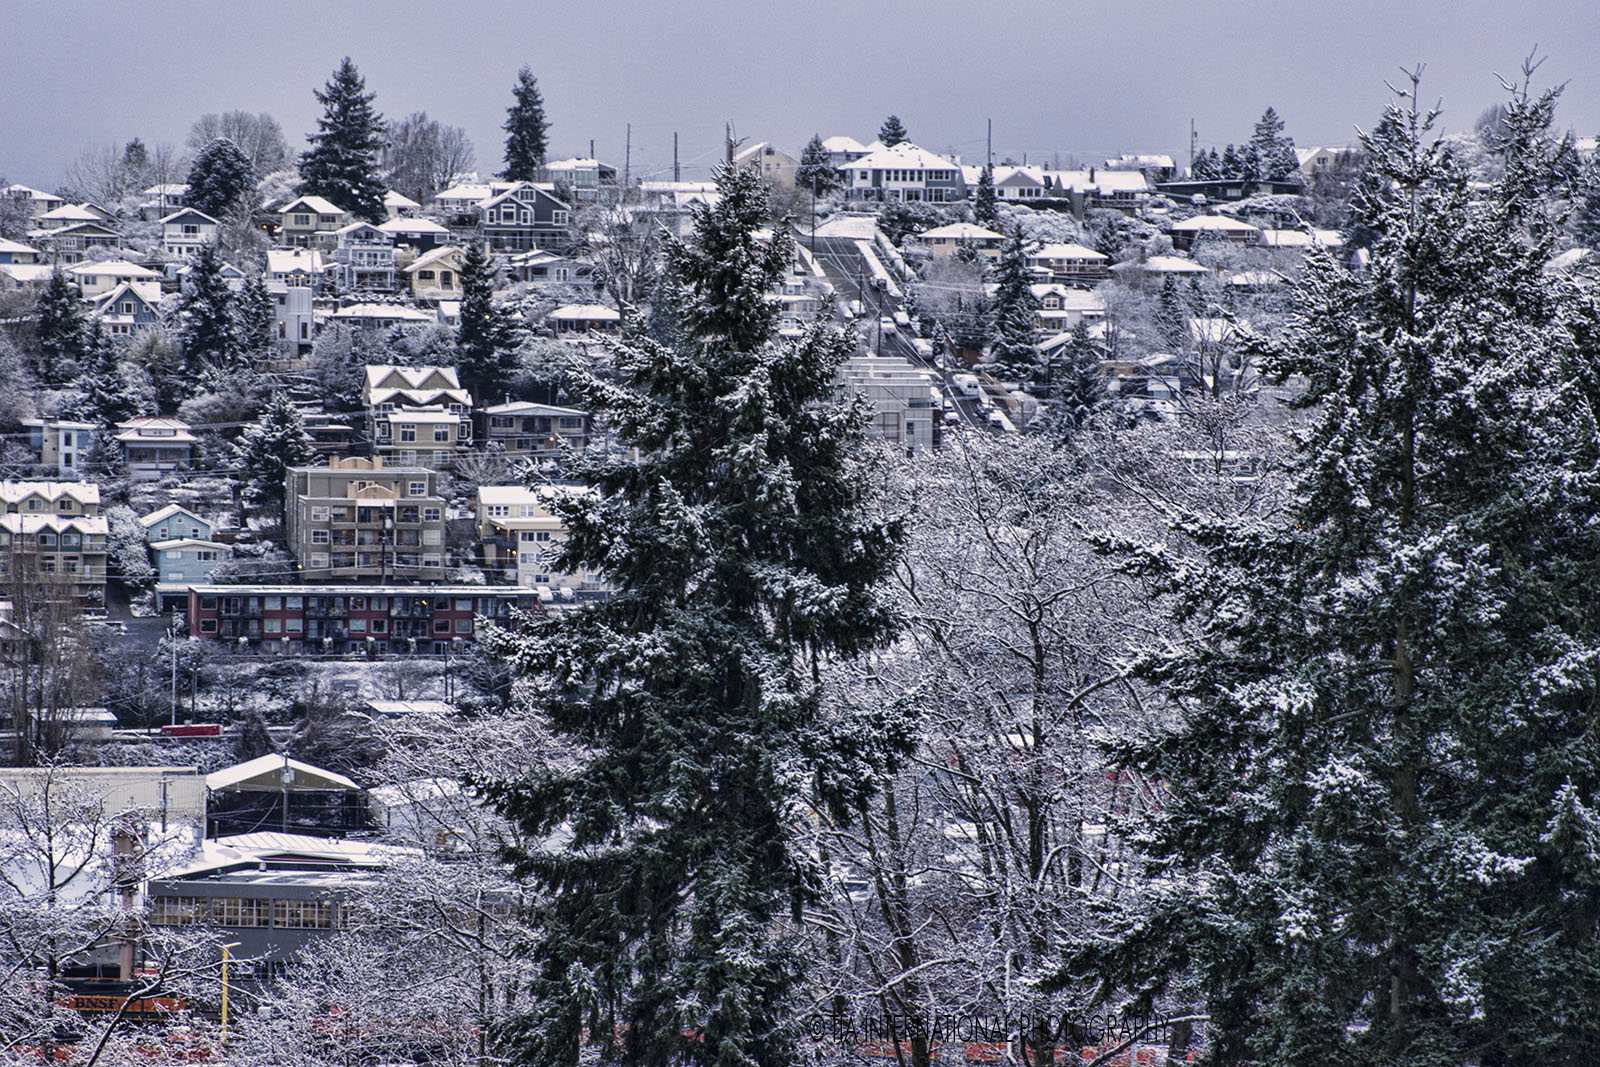 Queen Anne Hill (Seattle) in the snow. (January 13, 2020).